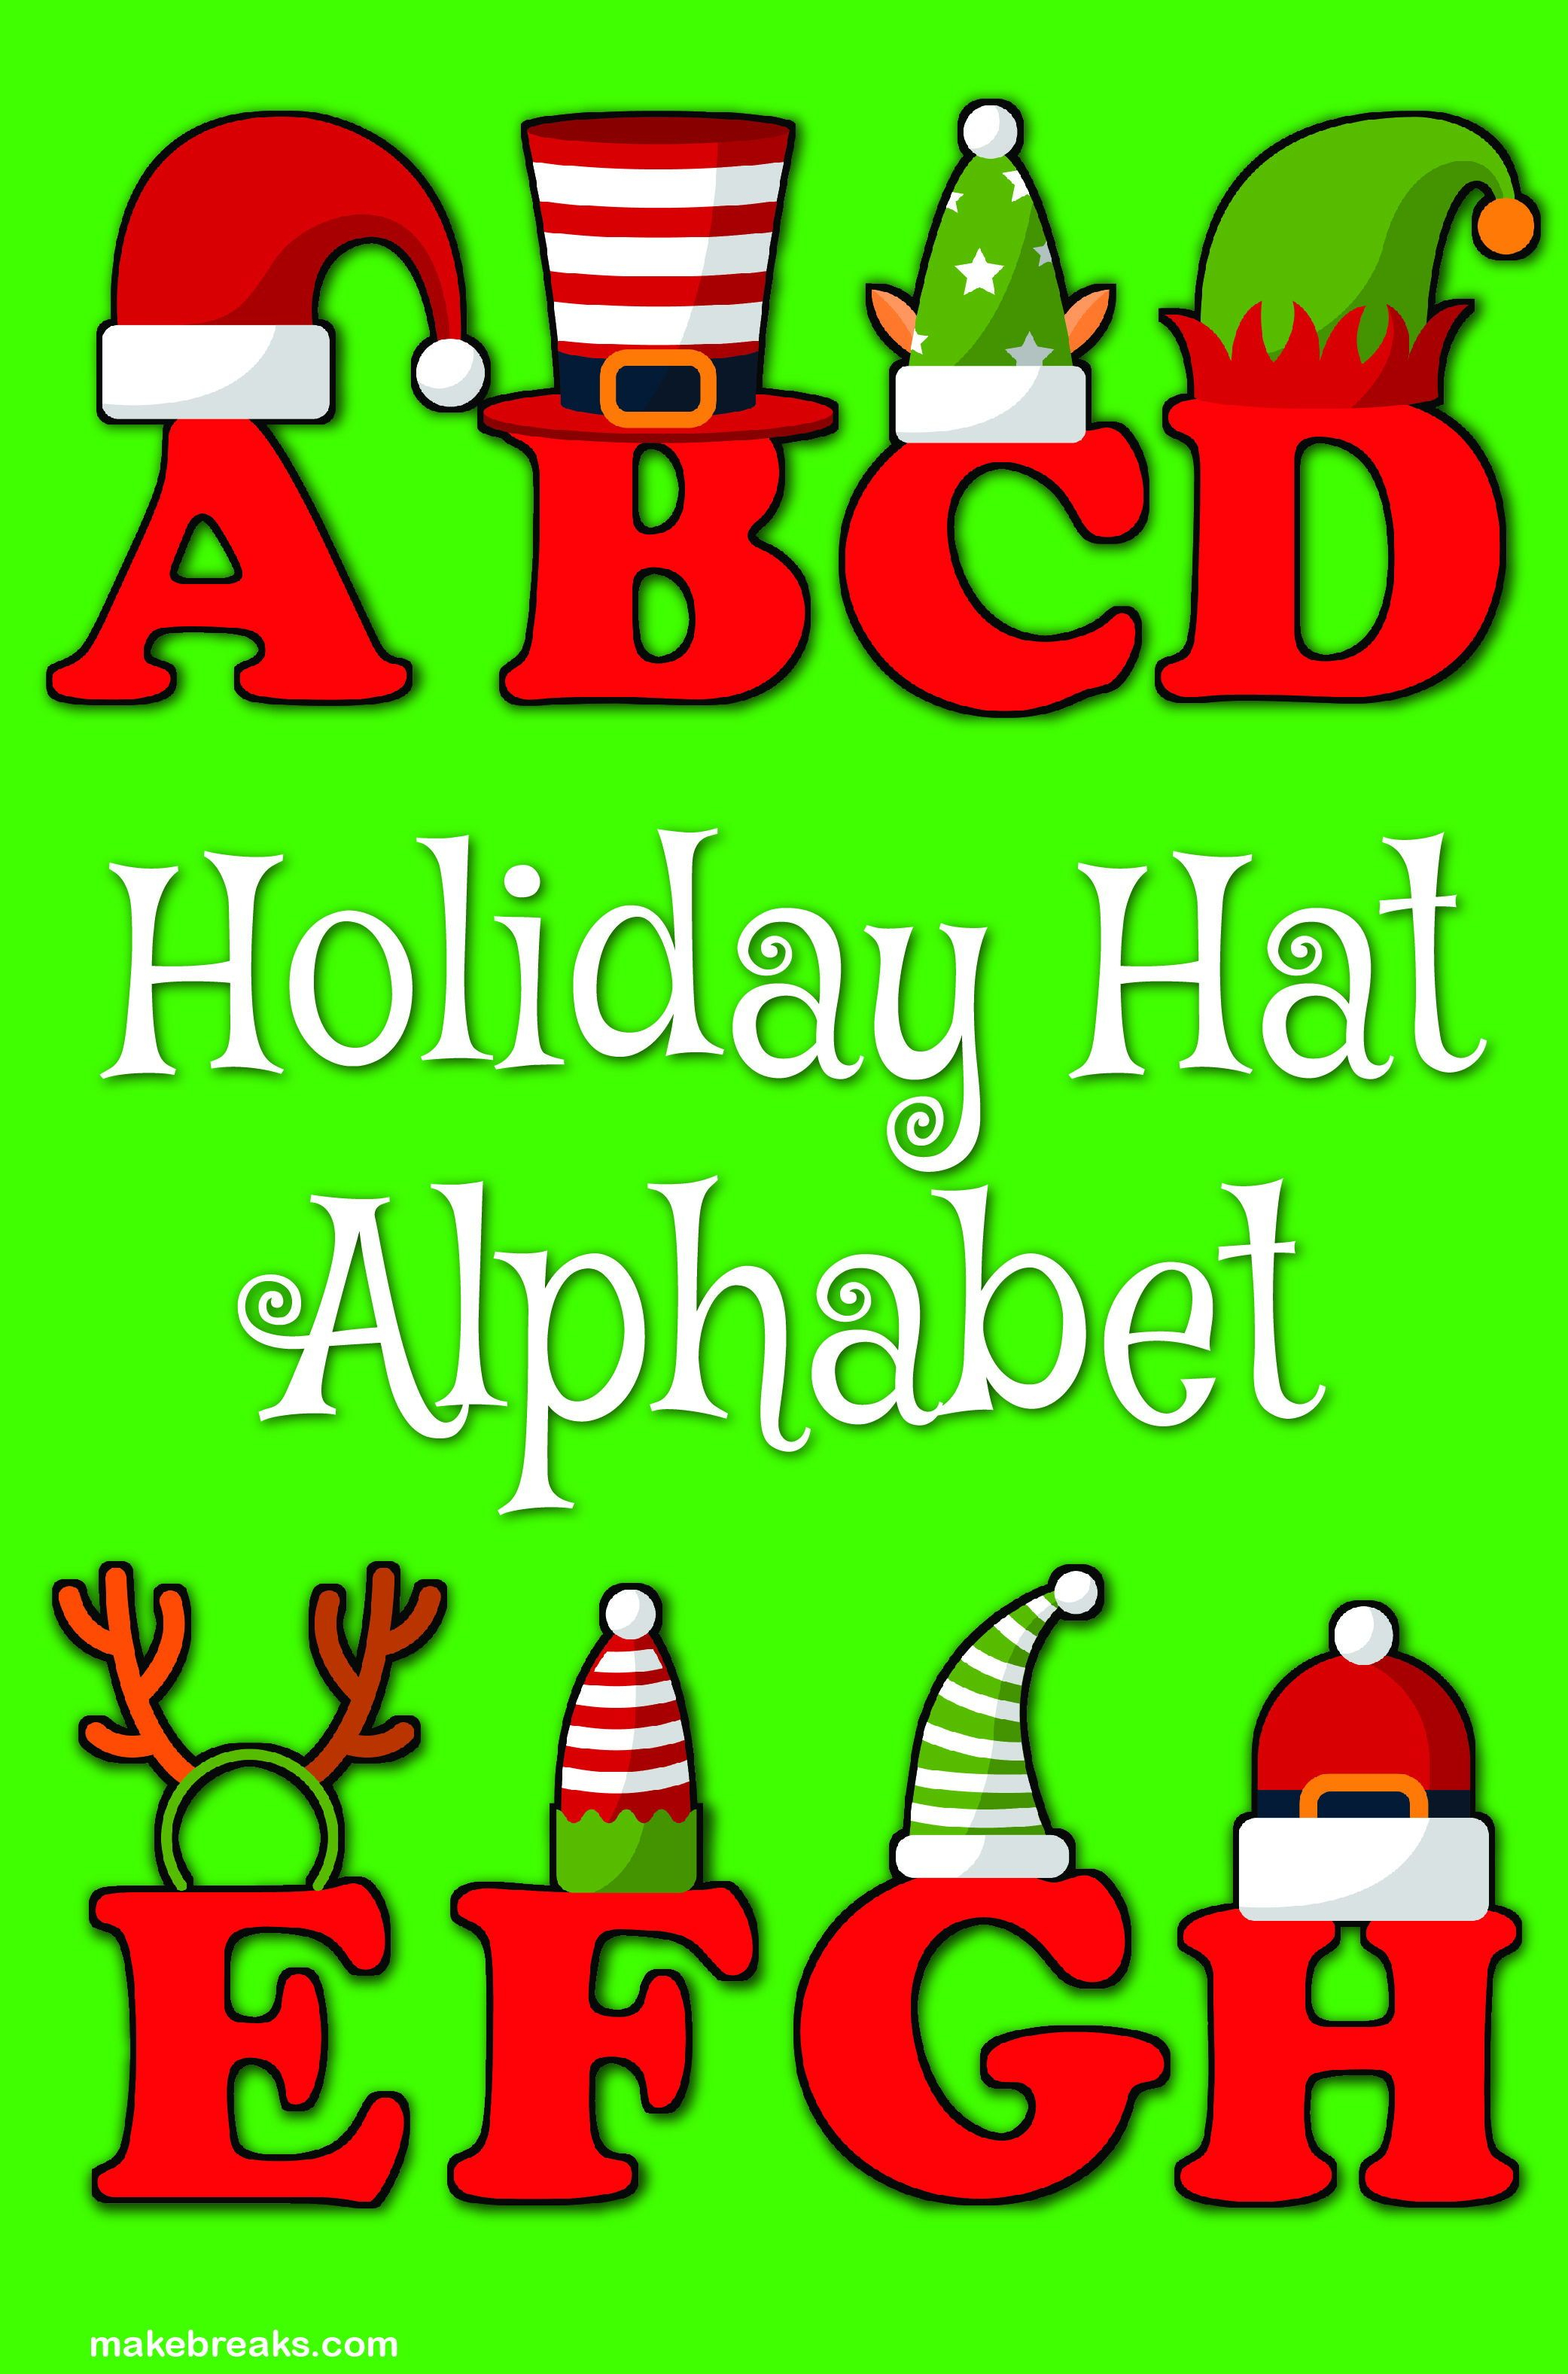 Funny Holiday Hat Christmas Alphabet Letters To Print - Free - Free Printable Christmas Alphabet